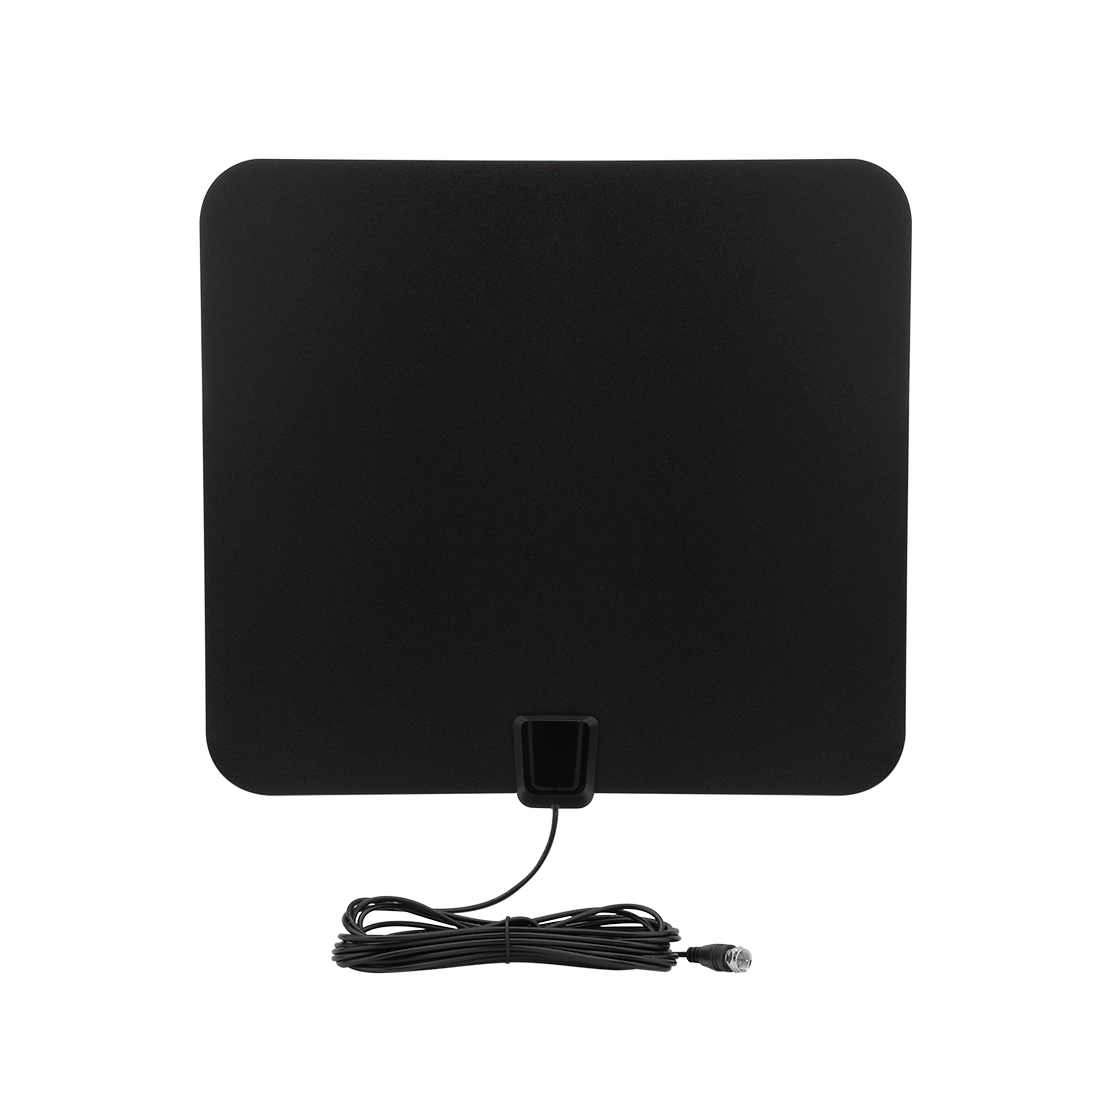 Digital HDTV Antenna - 50 Mile Range Indoor Amplified HDTV Antenna for High Reception